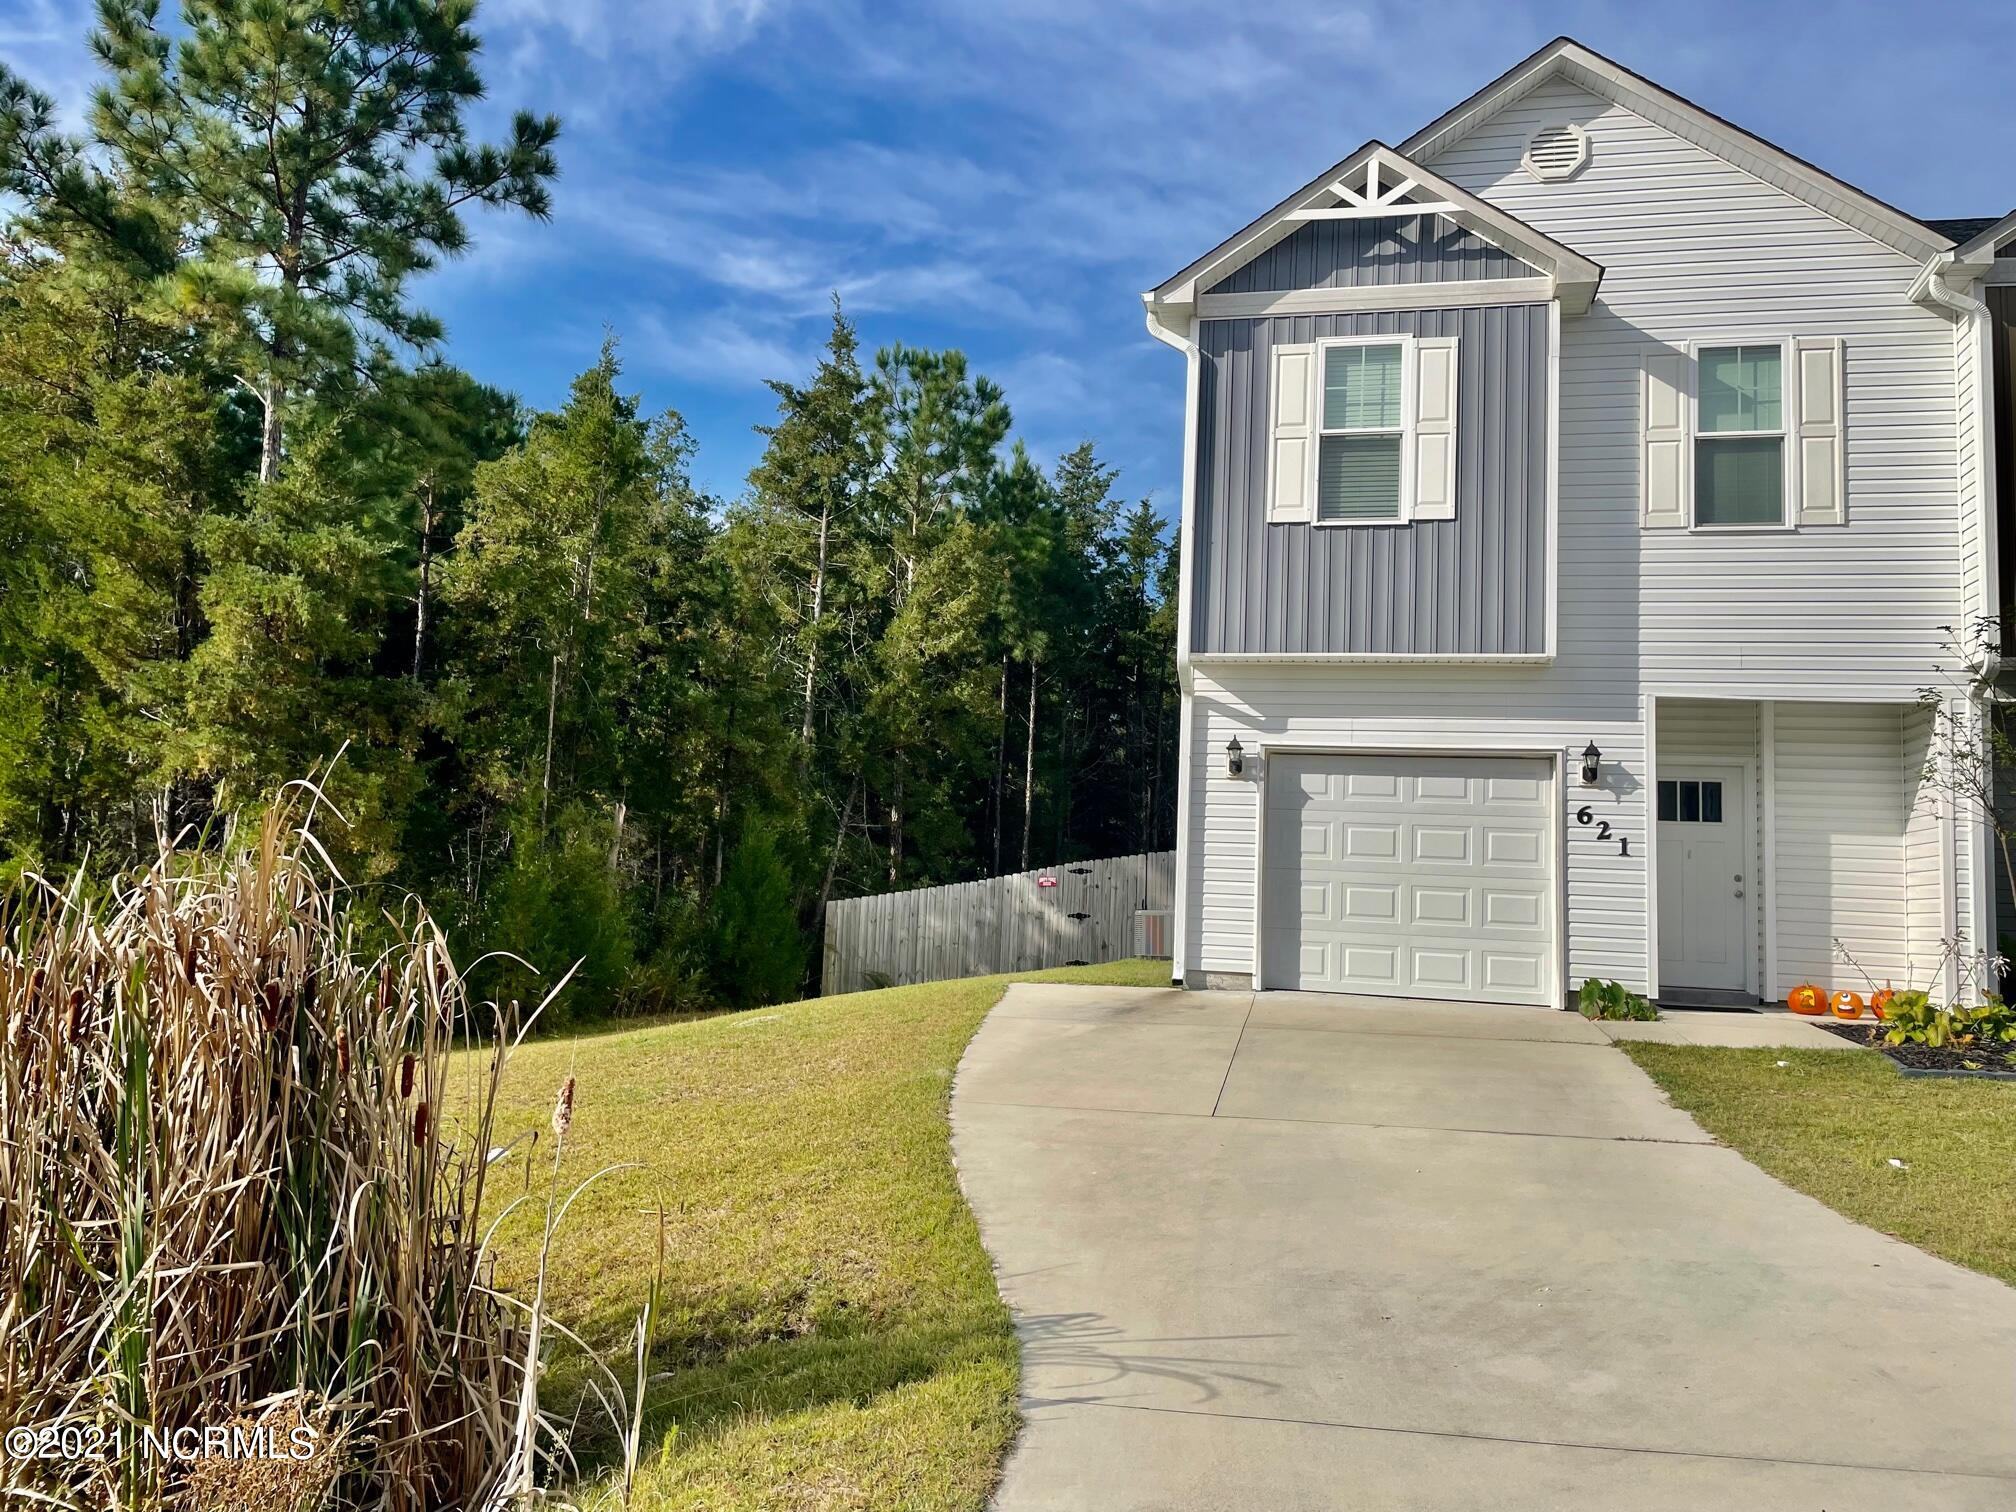 Welcome to The Landing at Folkstone! This highly sought after community is located near MCAS, Stone Bay, Topsail Island, local restaurants, entertainment and more! Fenced back yard and outdoor shower. The Rachael floor plan comes complete with 3 bedrooms located on the second floor, 2 1/2 baths, a beautiful eat in kitchen and a one car garage. These particular units are a perfect starter home or rental investment.